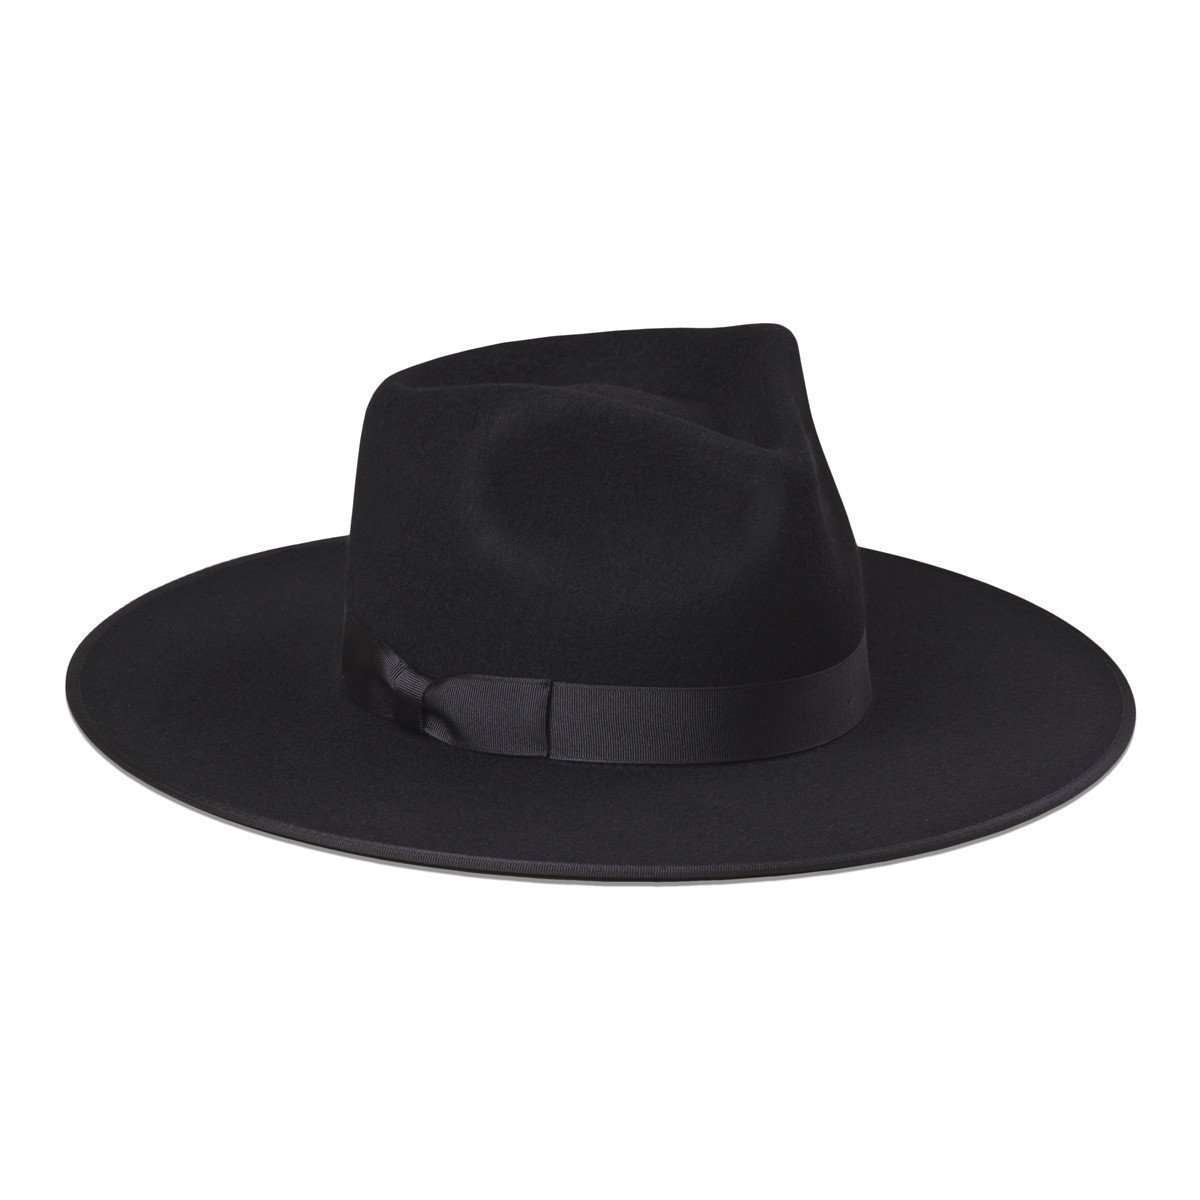 Rancher_Hat__Noir__S_Black